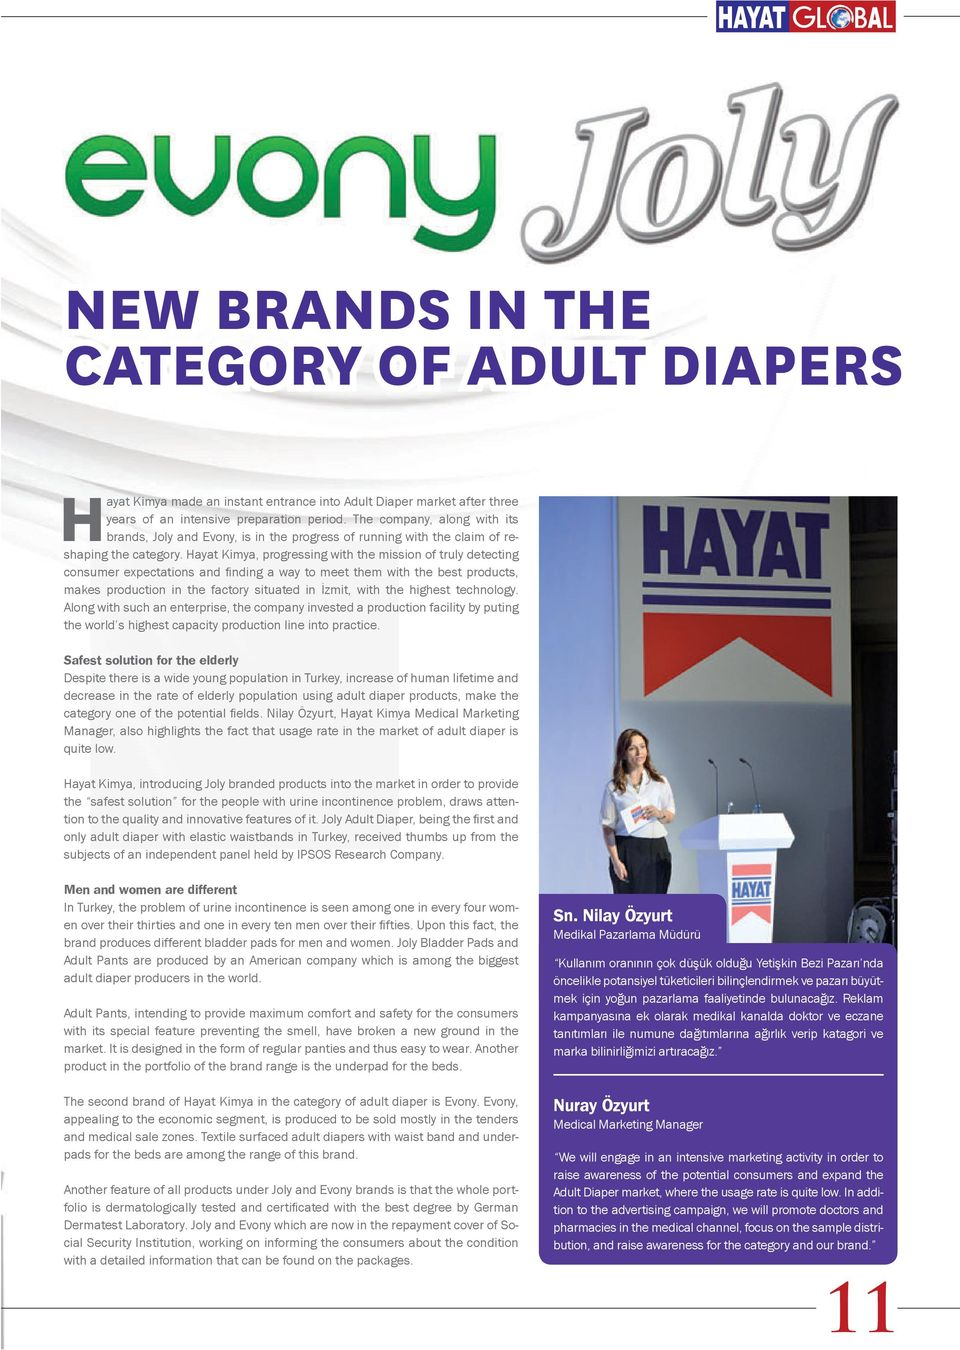 Hayat Kimya, progressing with the mission of truly detecting consumer expectations and finding a way to meet them with the best products, makes production in the factory situated in İzmit, with the